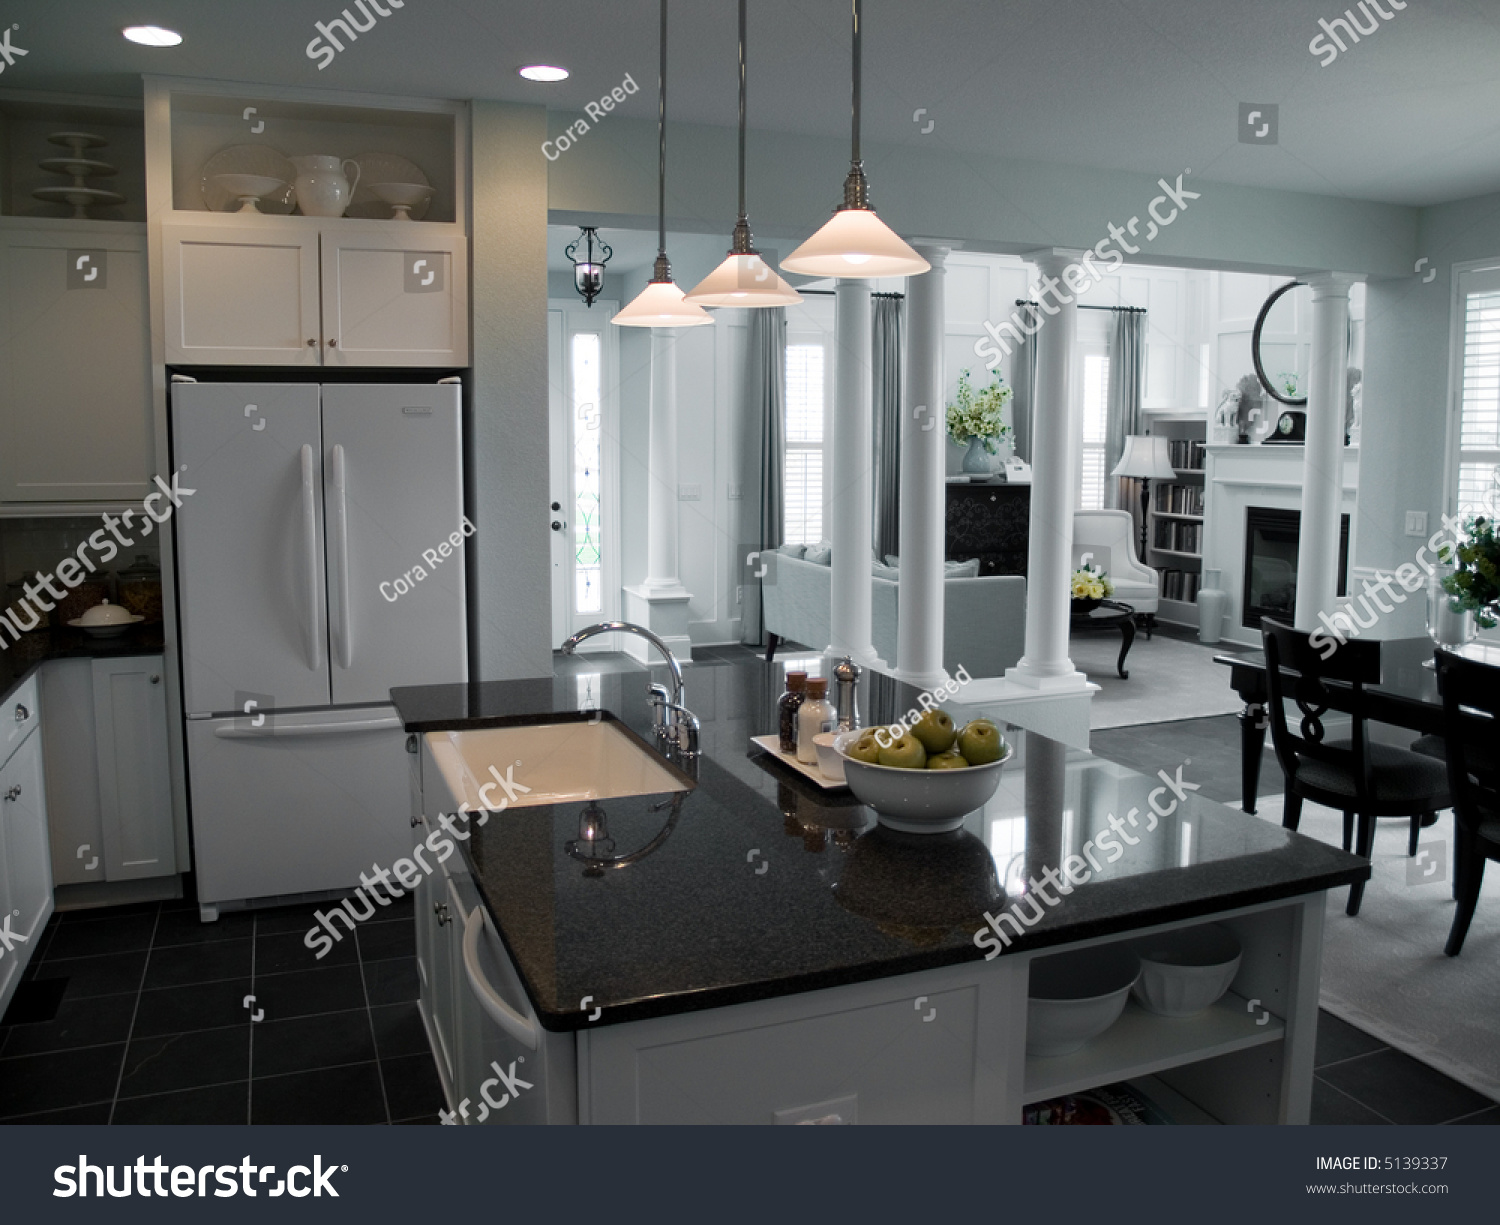 Modern Open Floor Plan Kitchen Into Stock Photo 5139337 Shutterstock